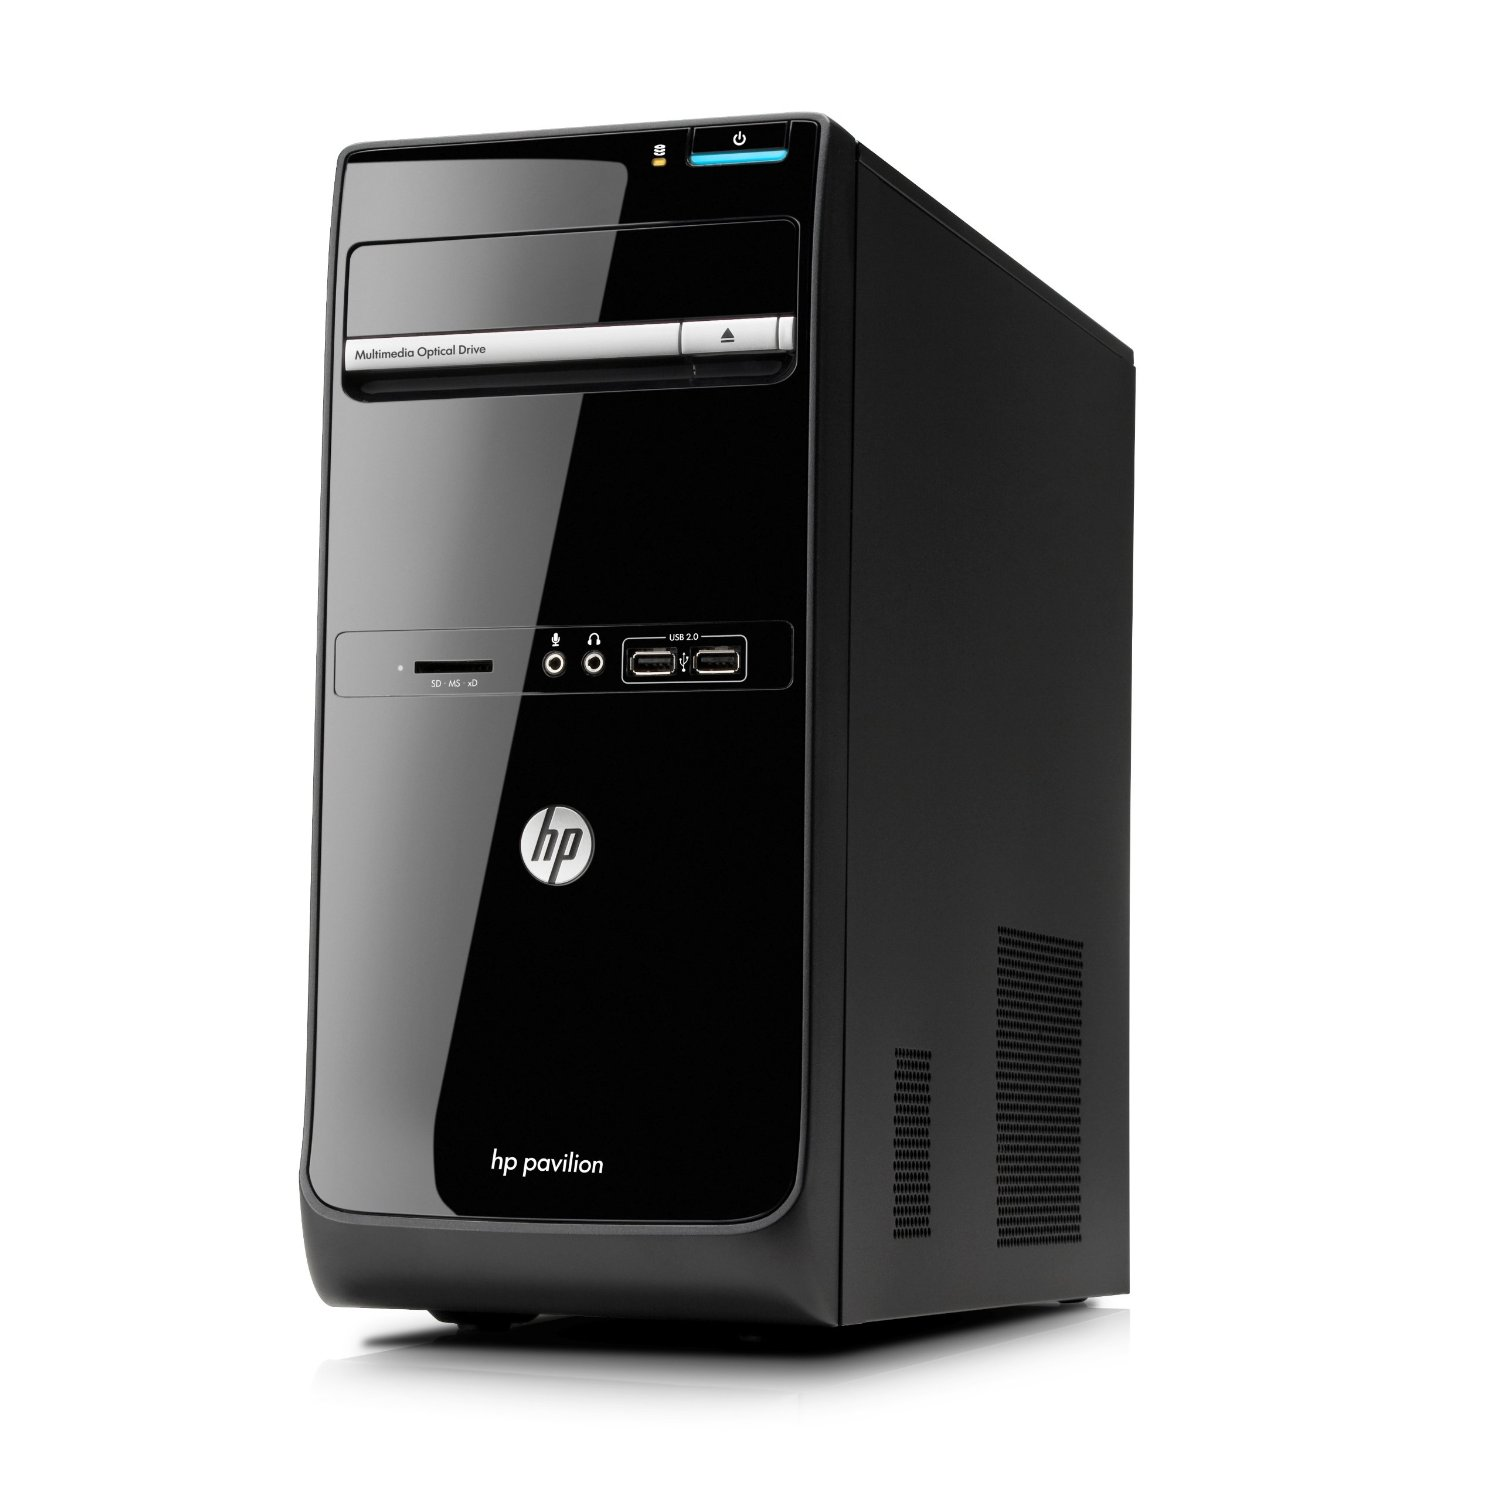 hp pavilion p6 2390 desktop review desktop computers review